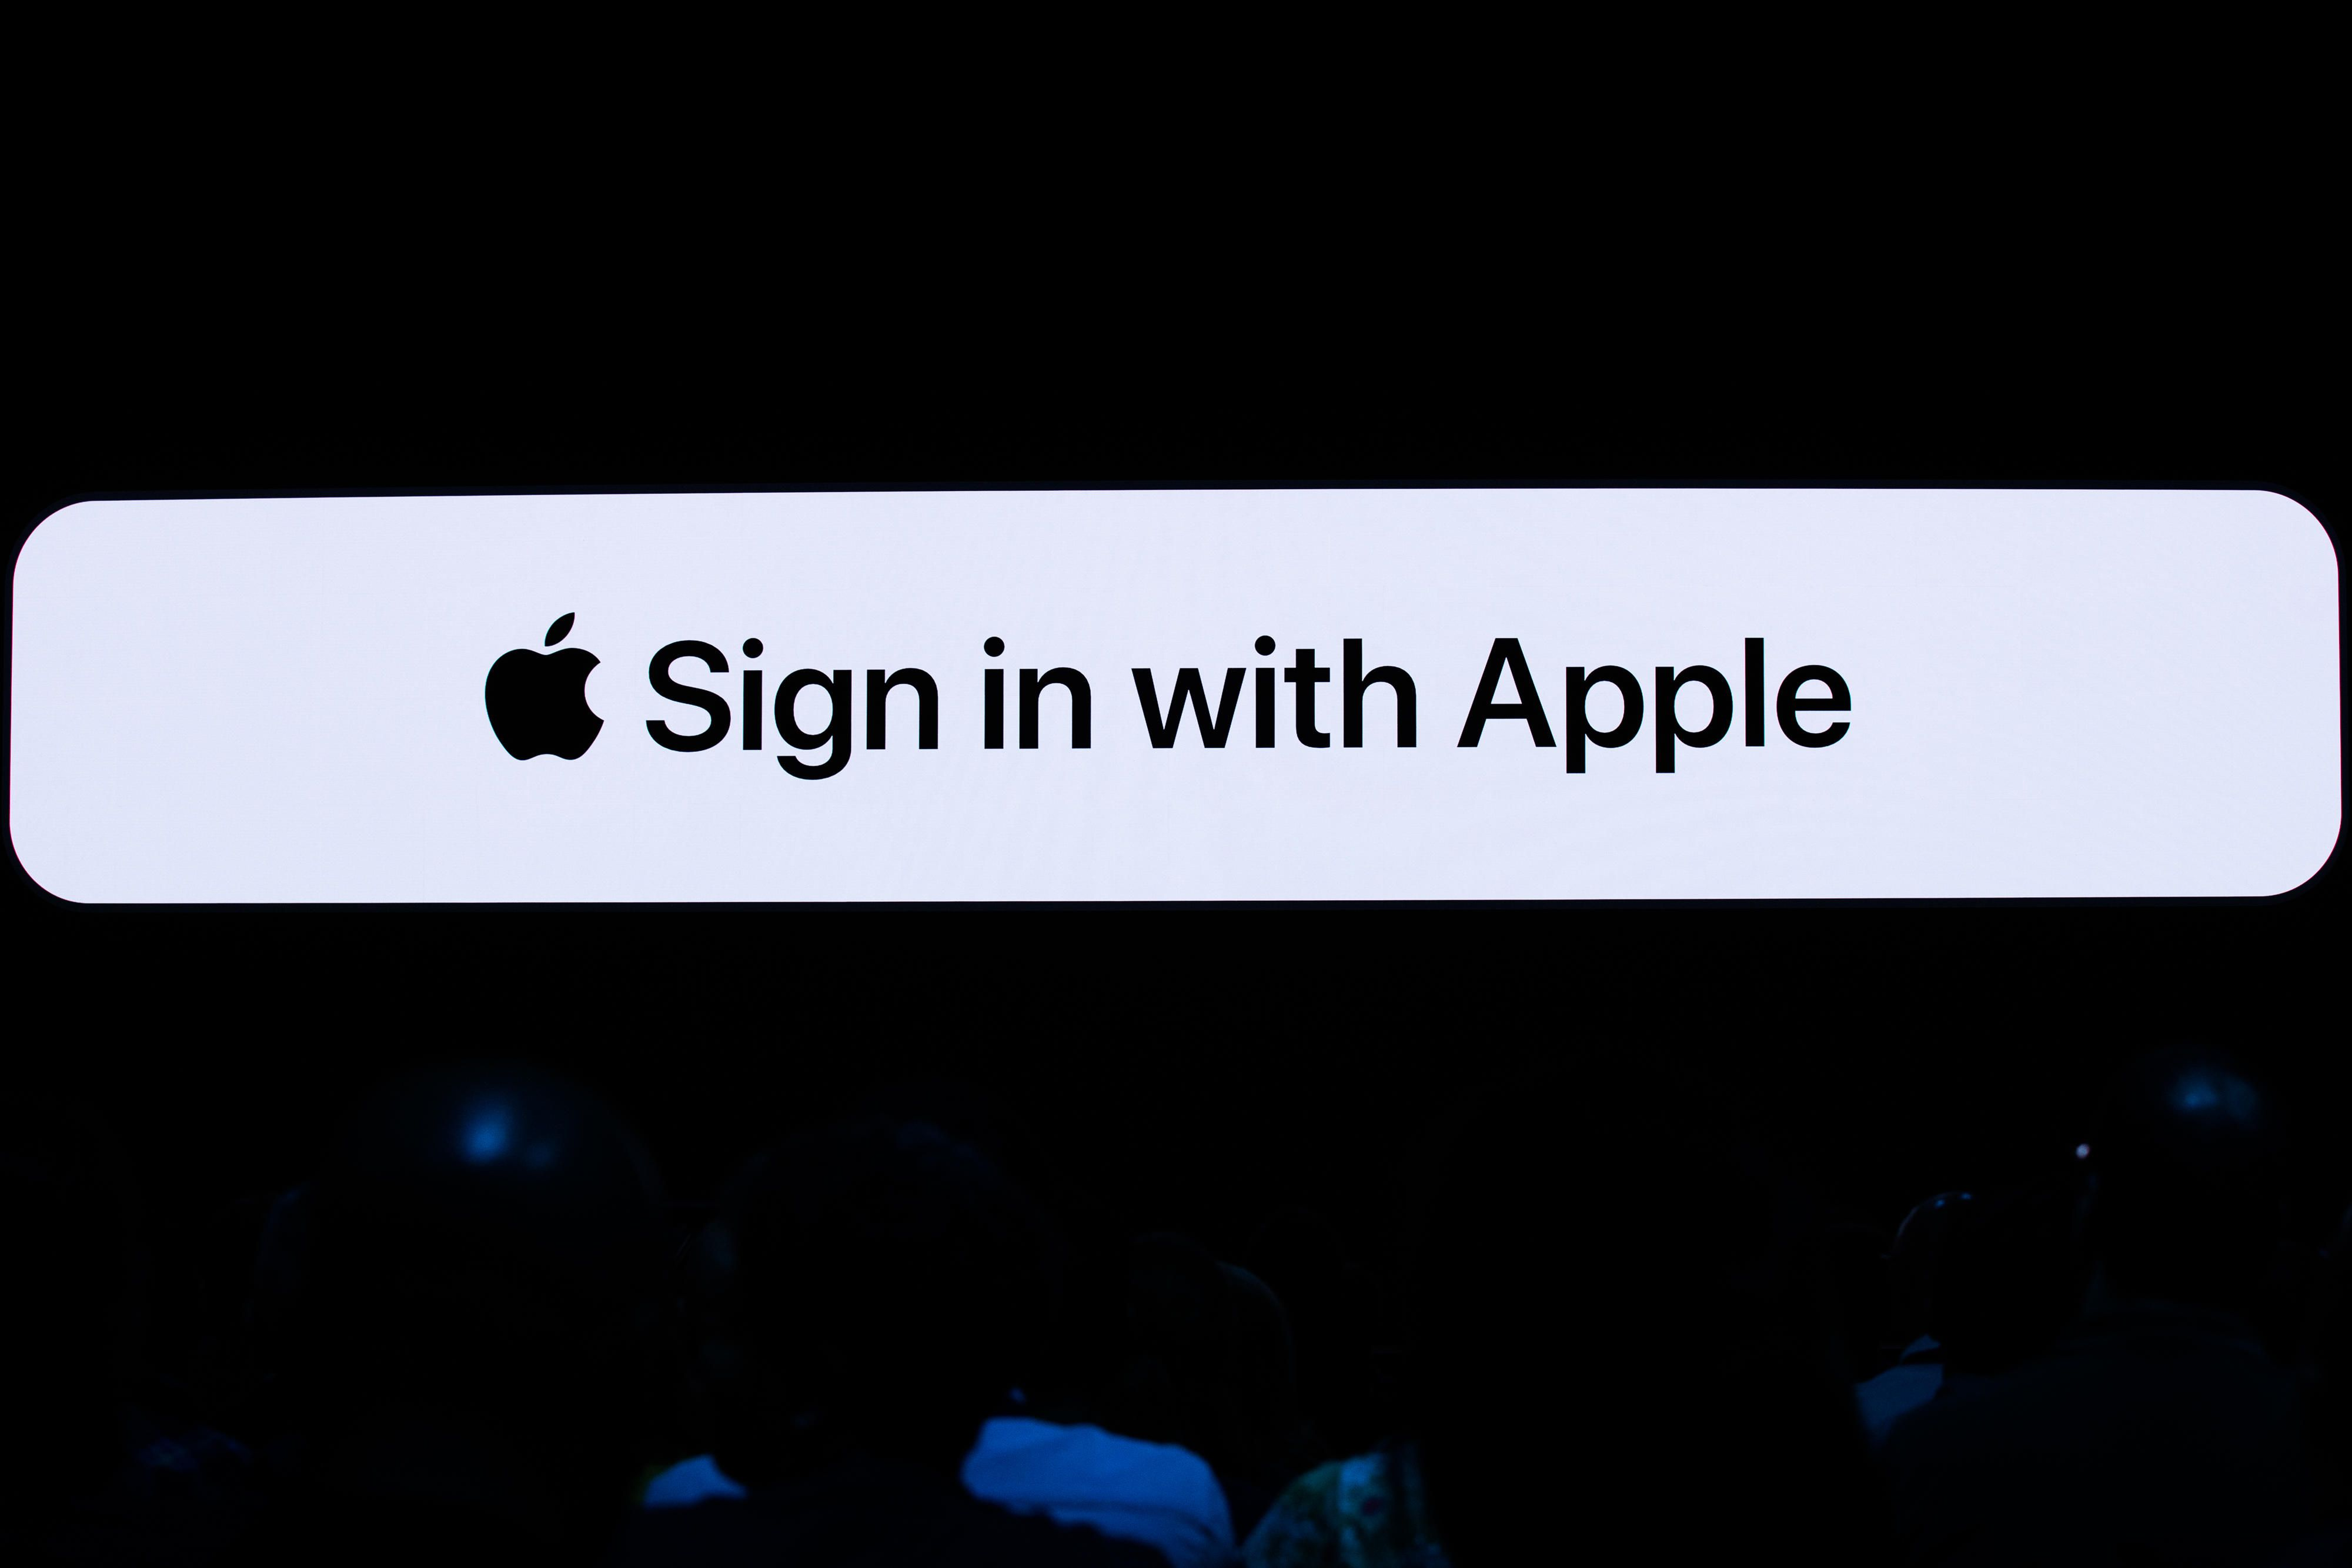 apple-wwdc-2019-sign-in-with-apple-2815